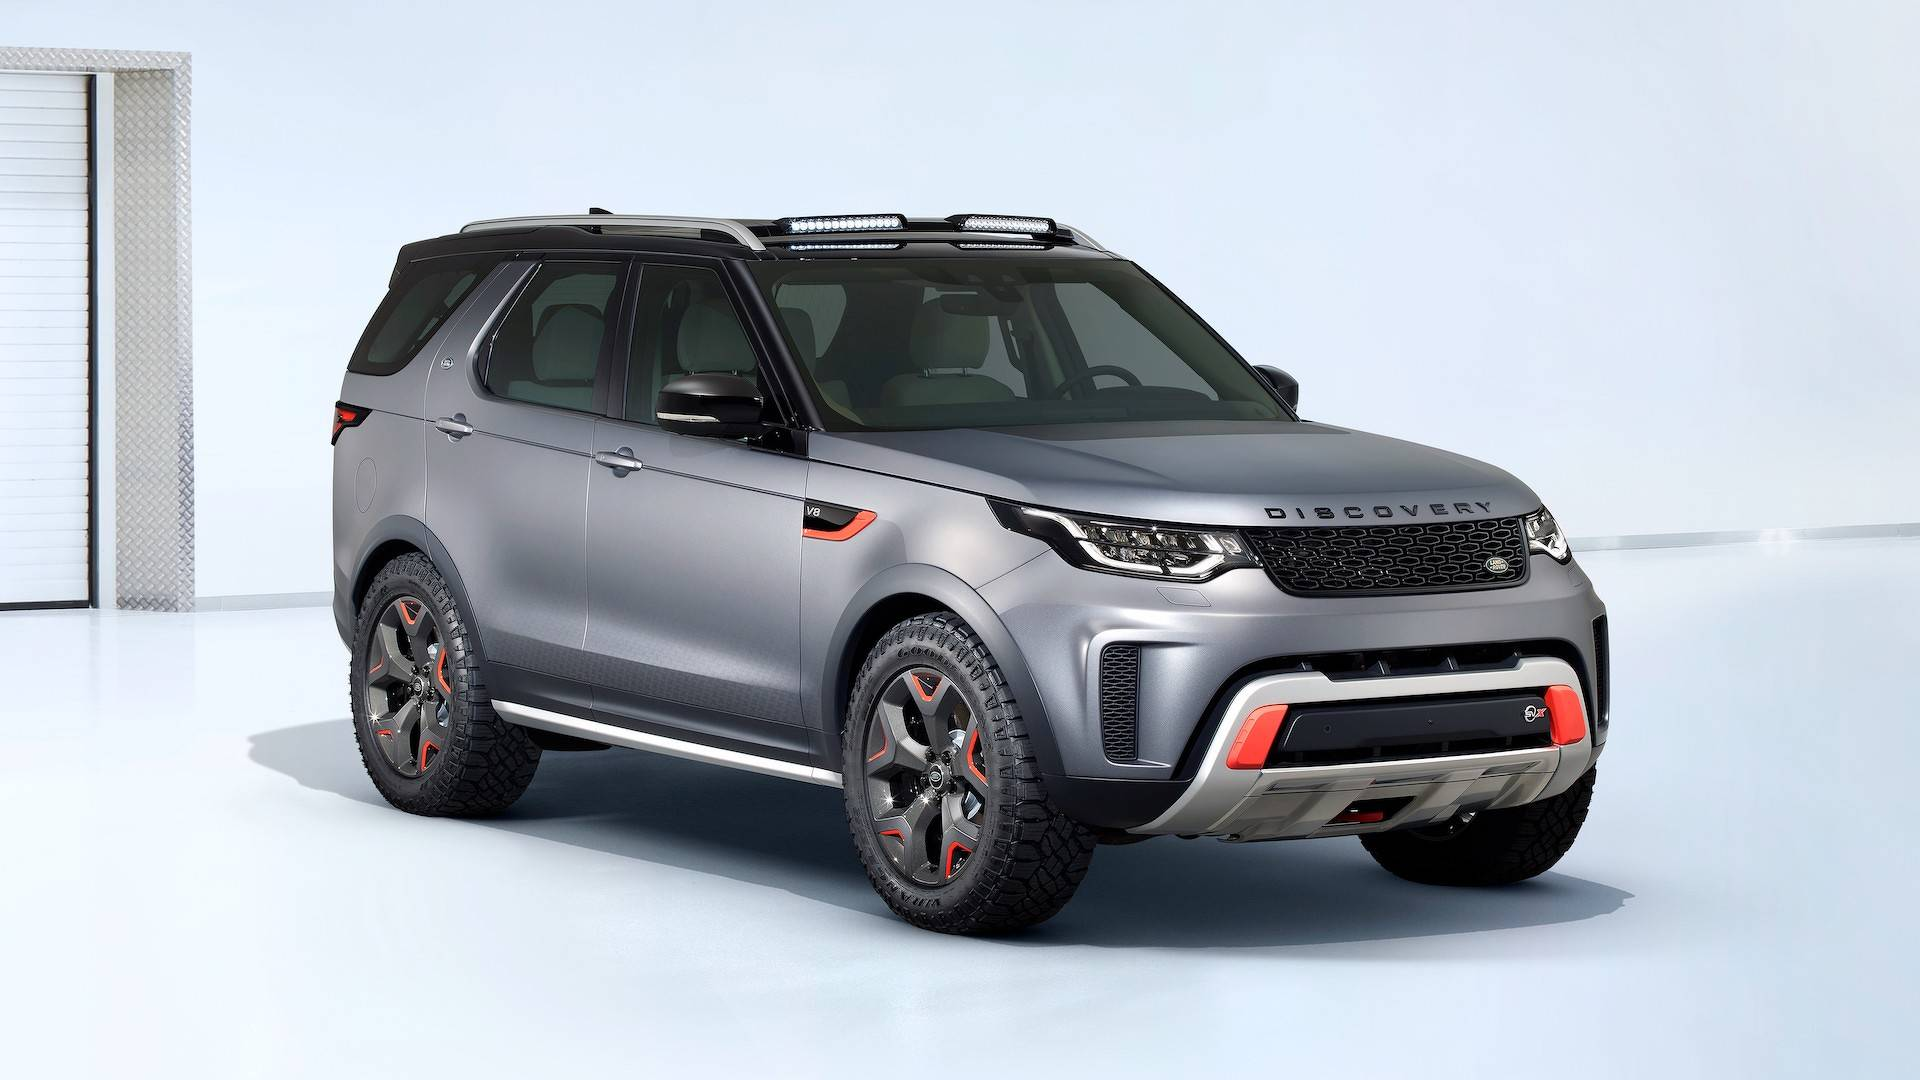 Land Rover Discovery >> Land Rover Discover Svx Iptal Edildi